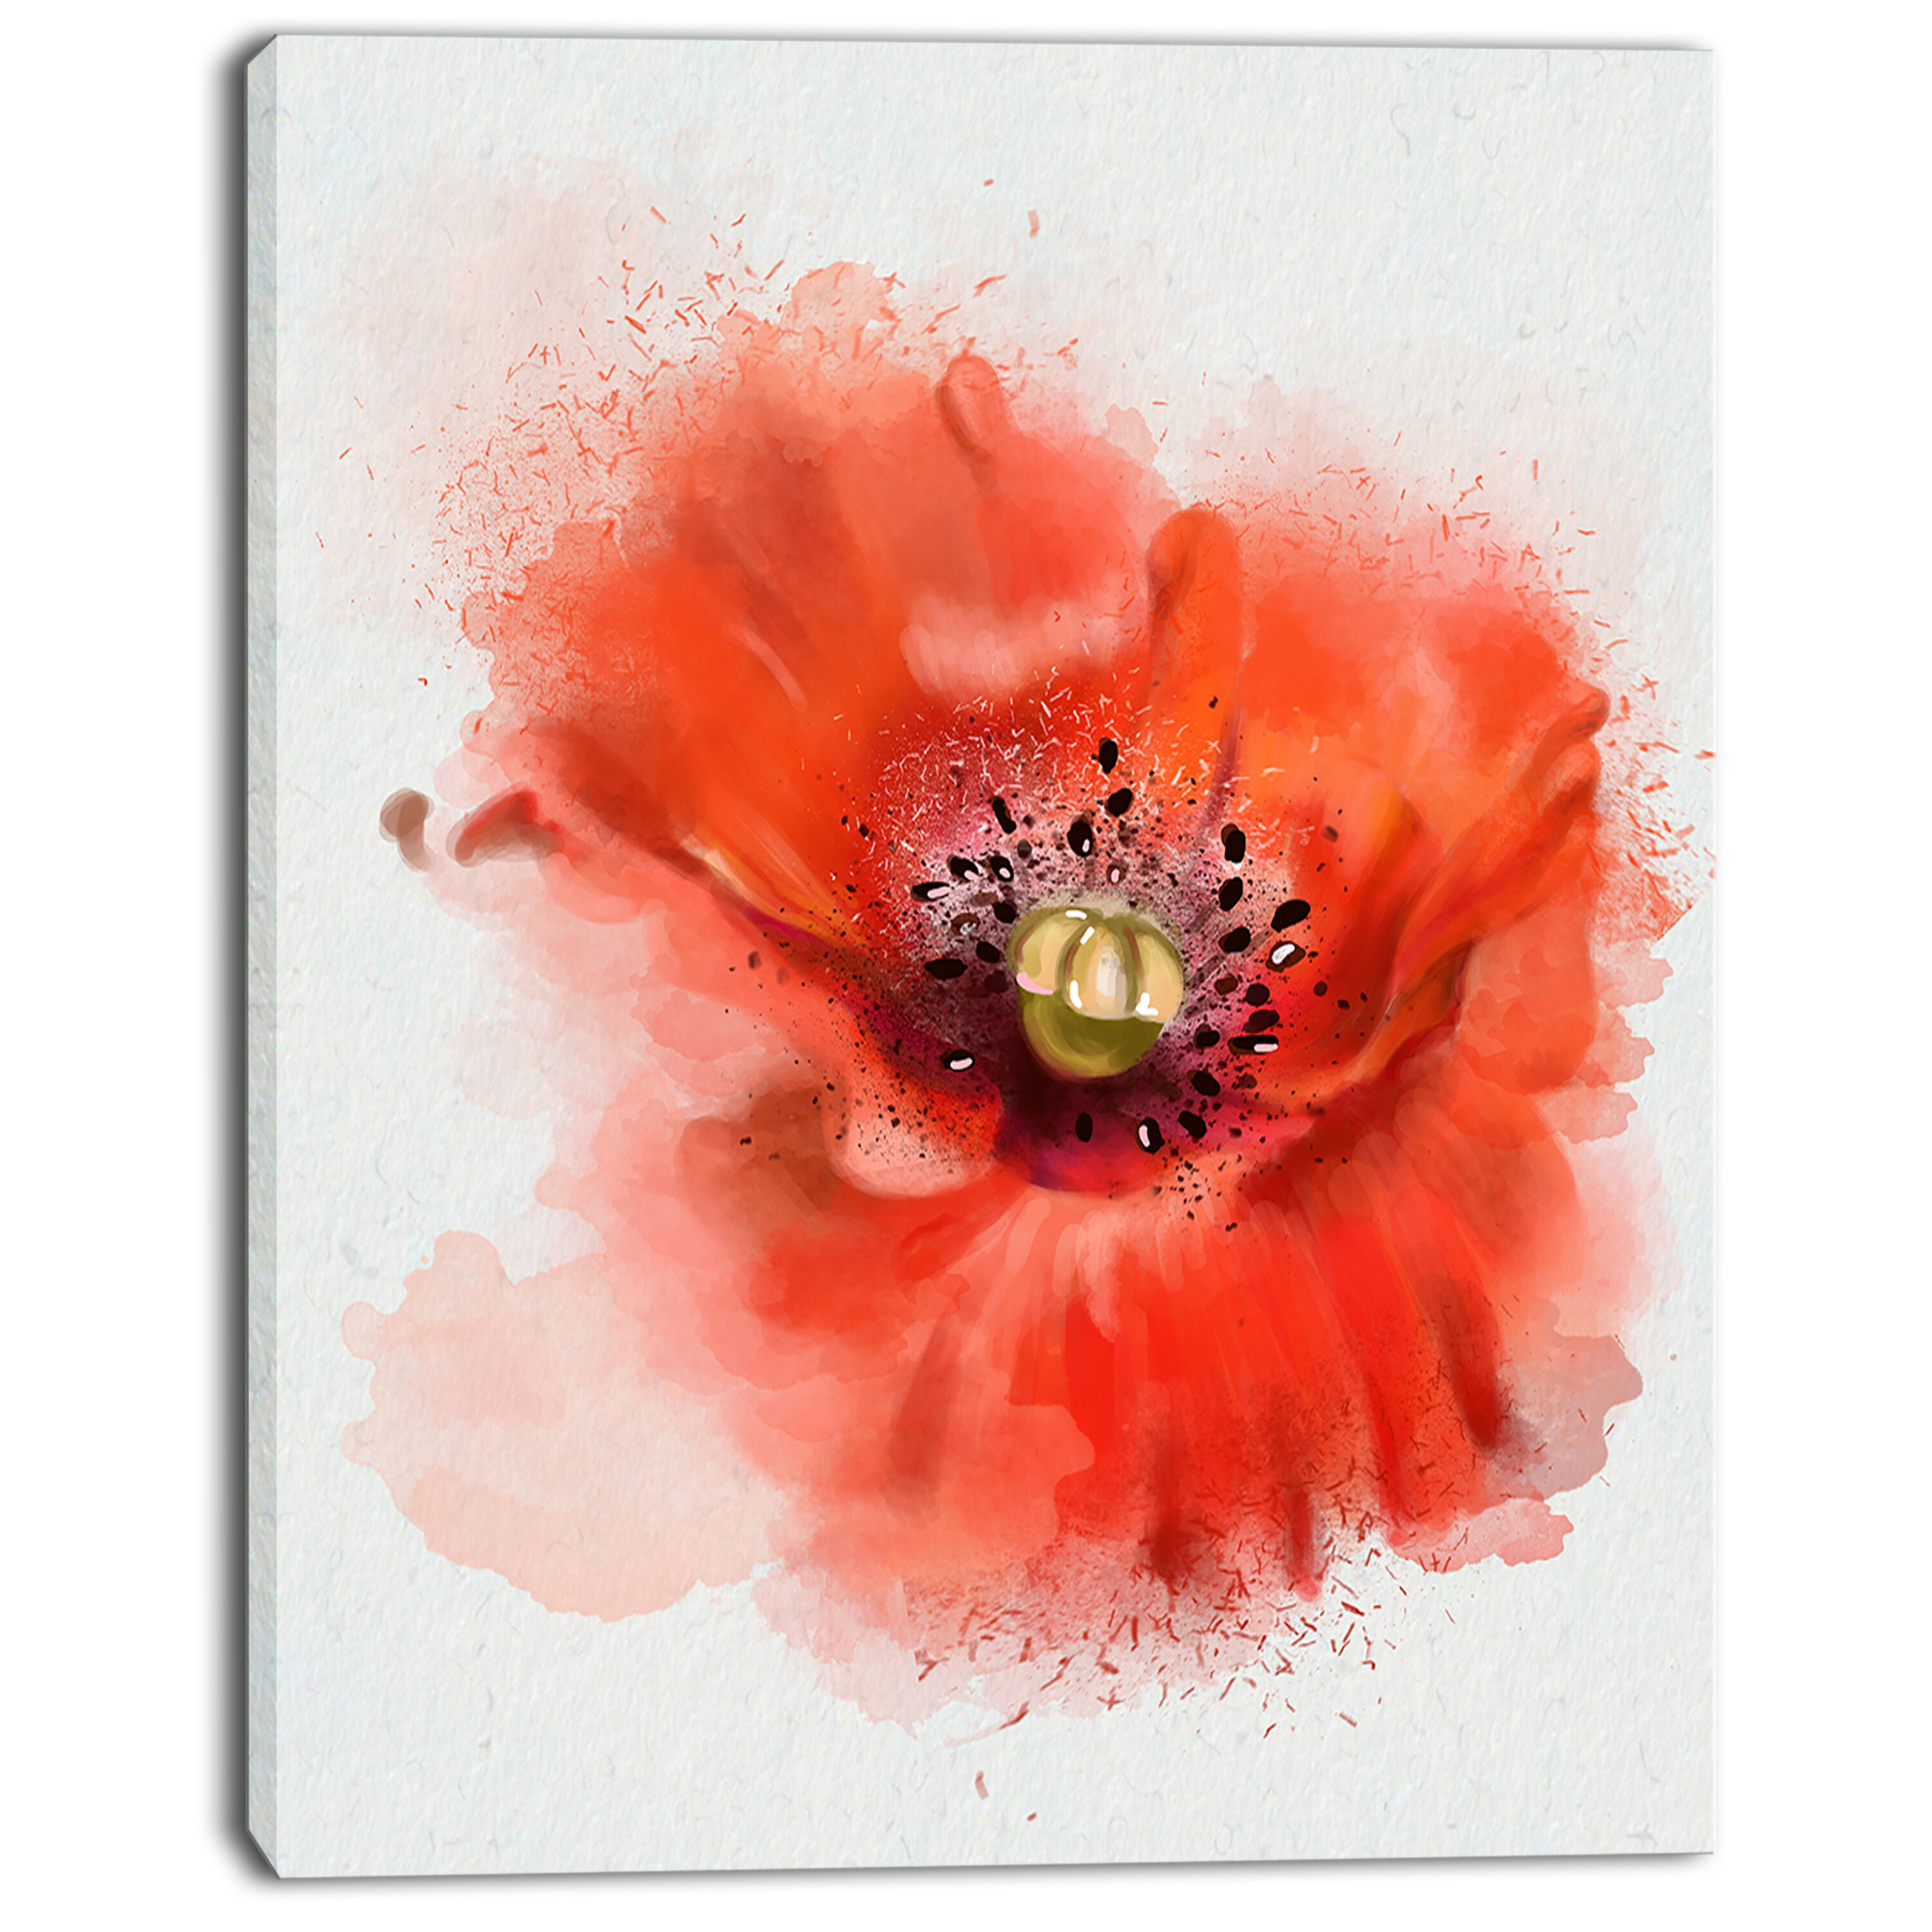 Designart Stylish Red Watercolor Poppy Flower Painting Print On Wred Canvas Wayfair